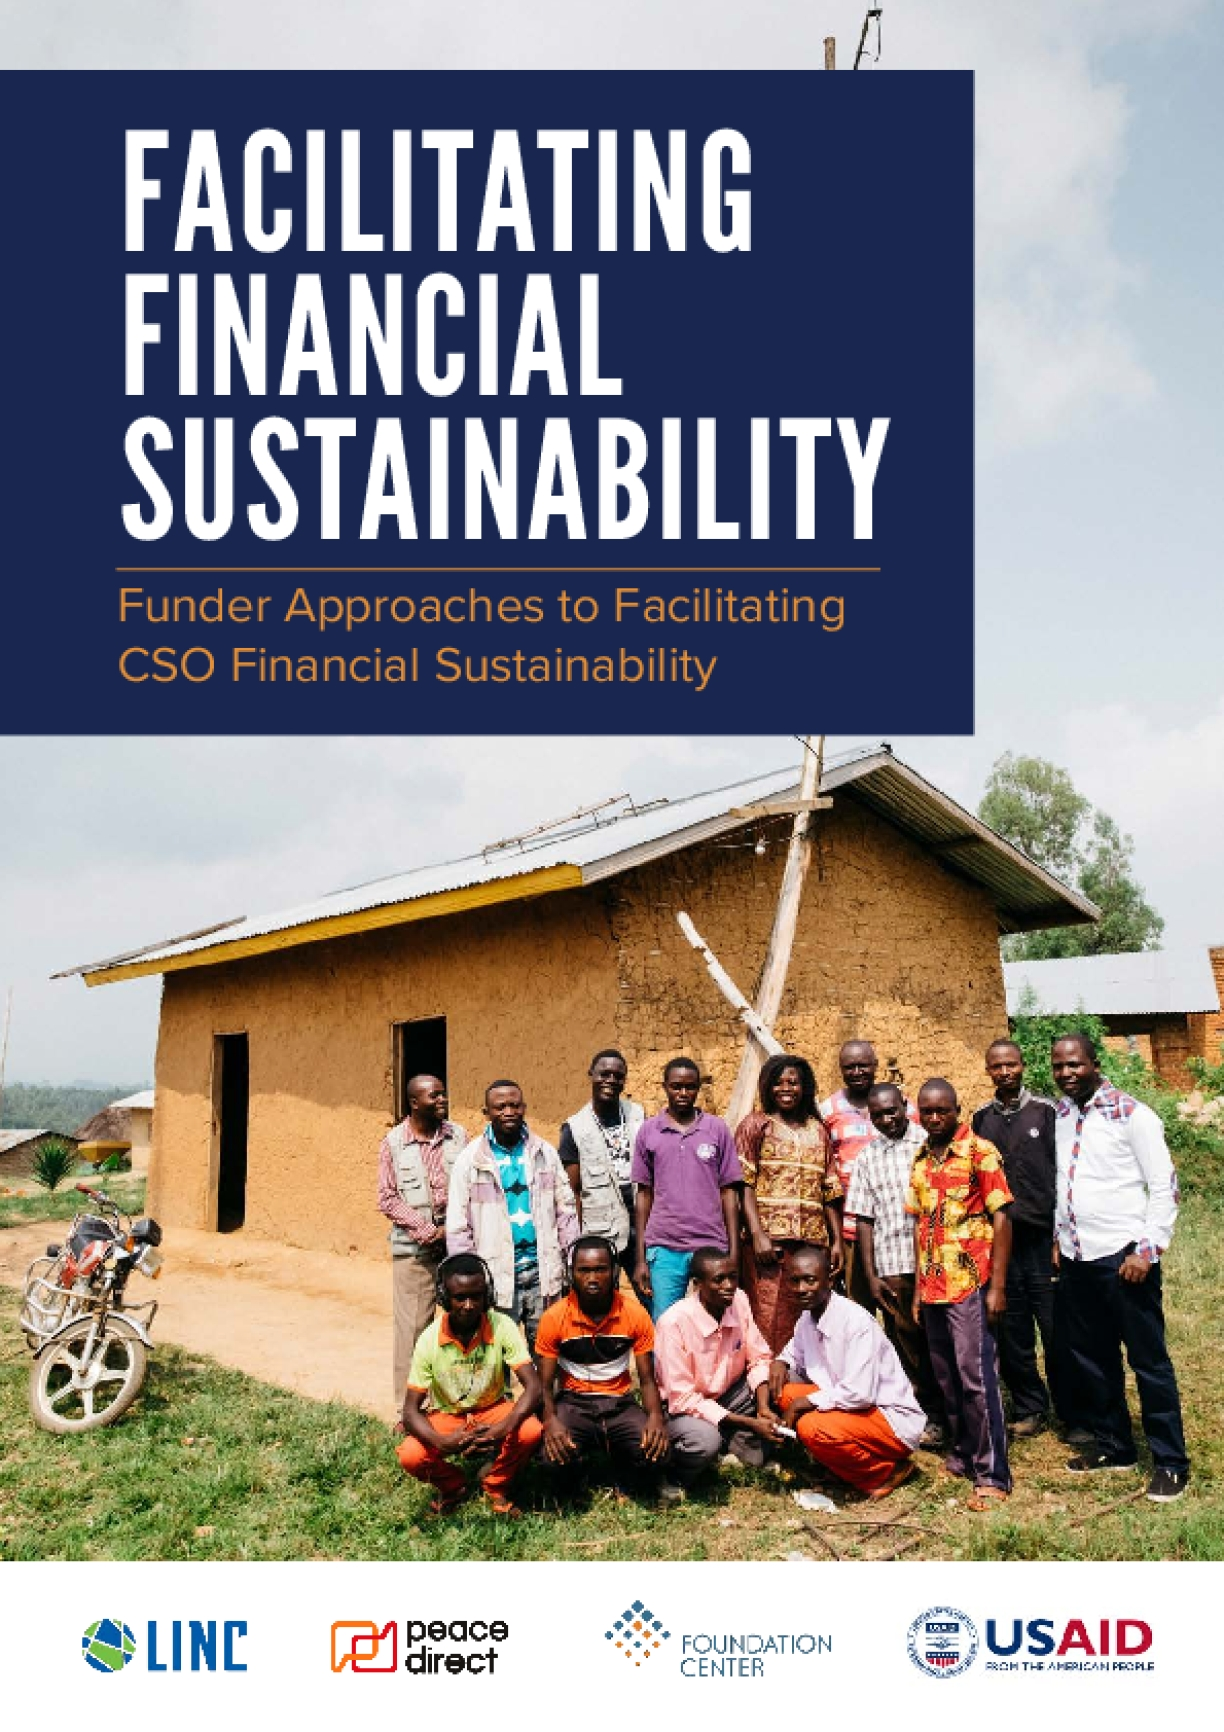 Facilitating Financial Sustainability: Funder Approaches